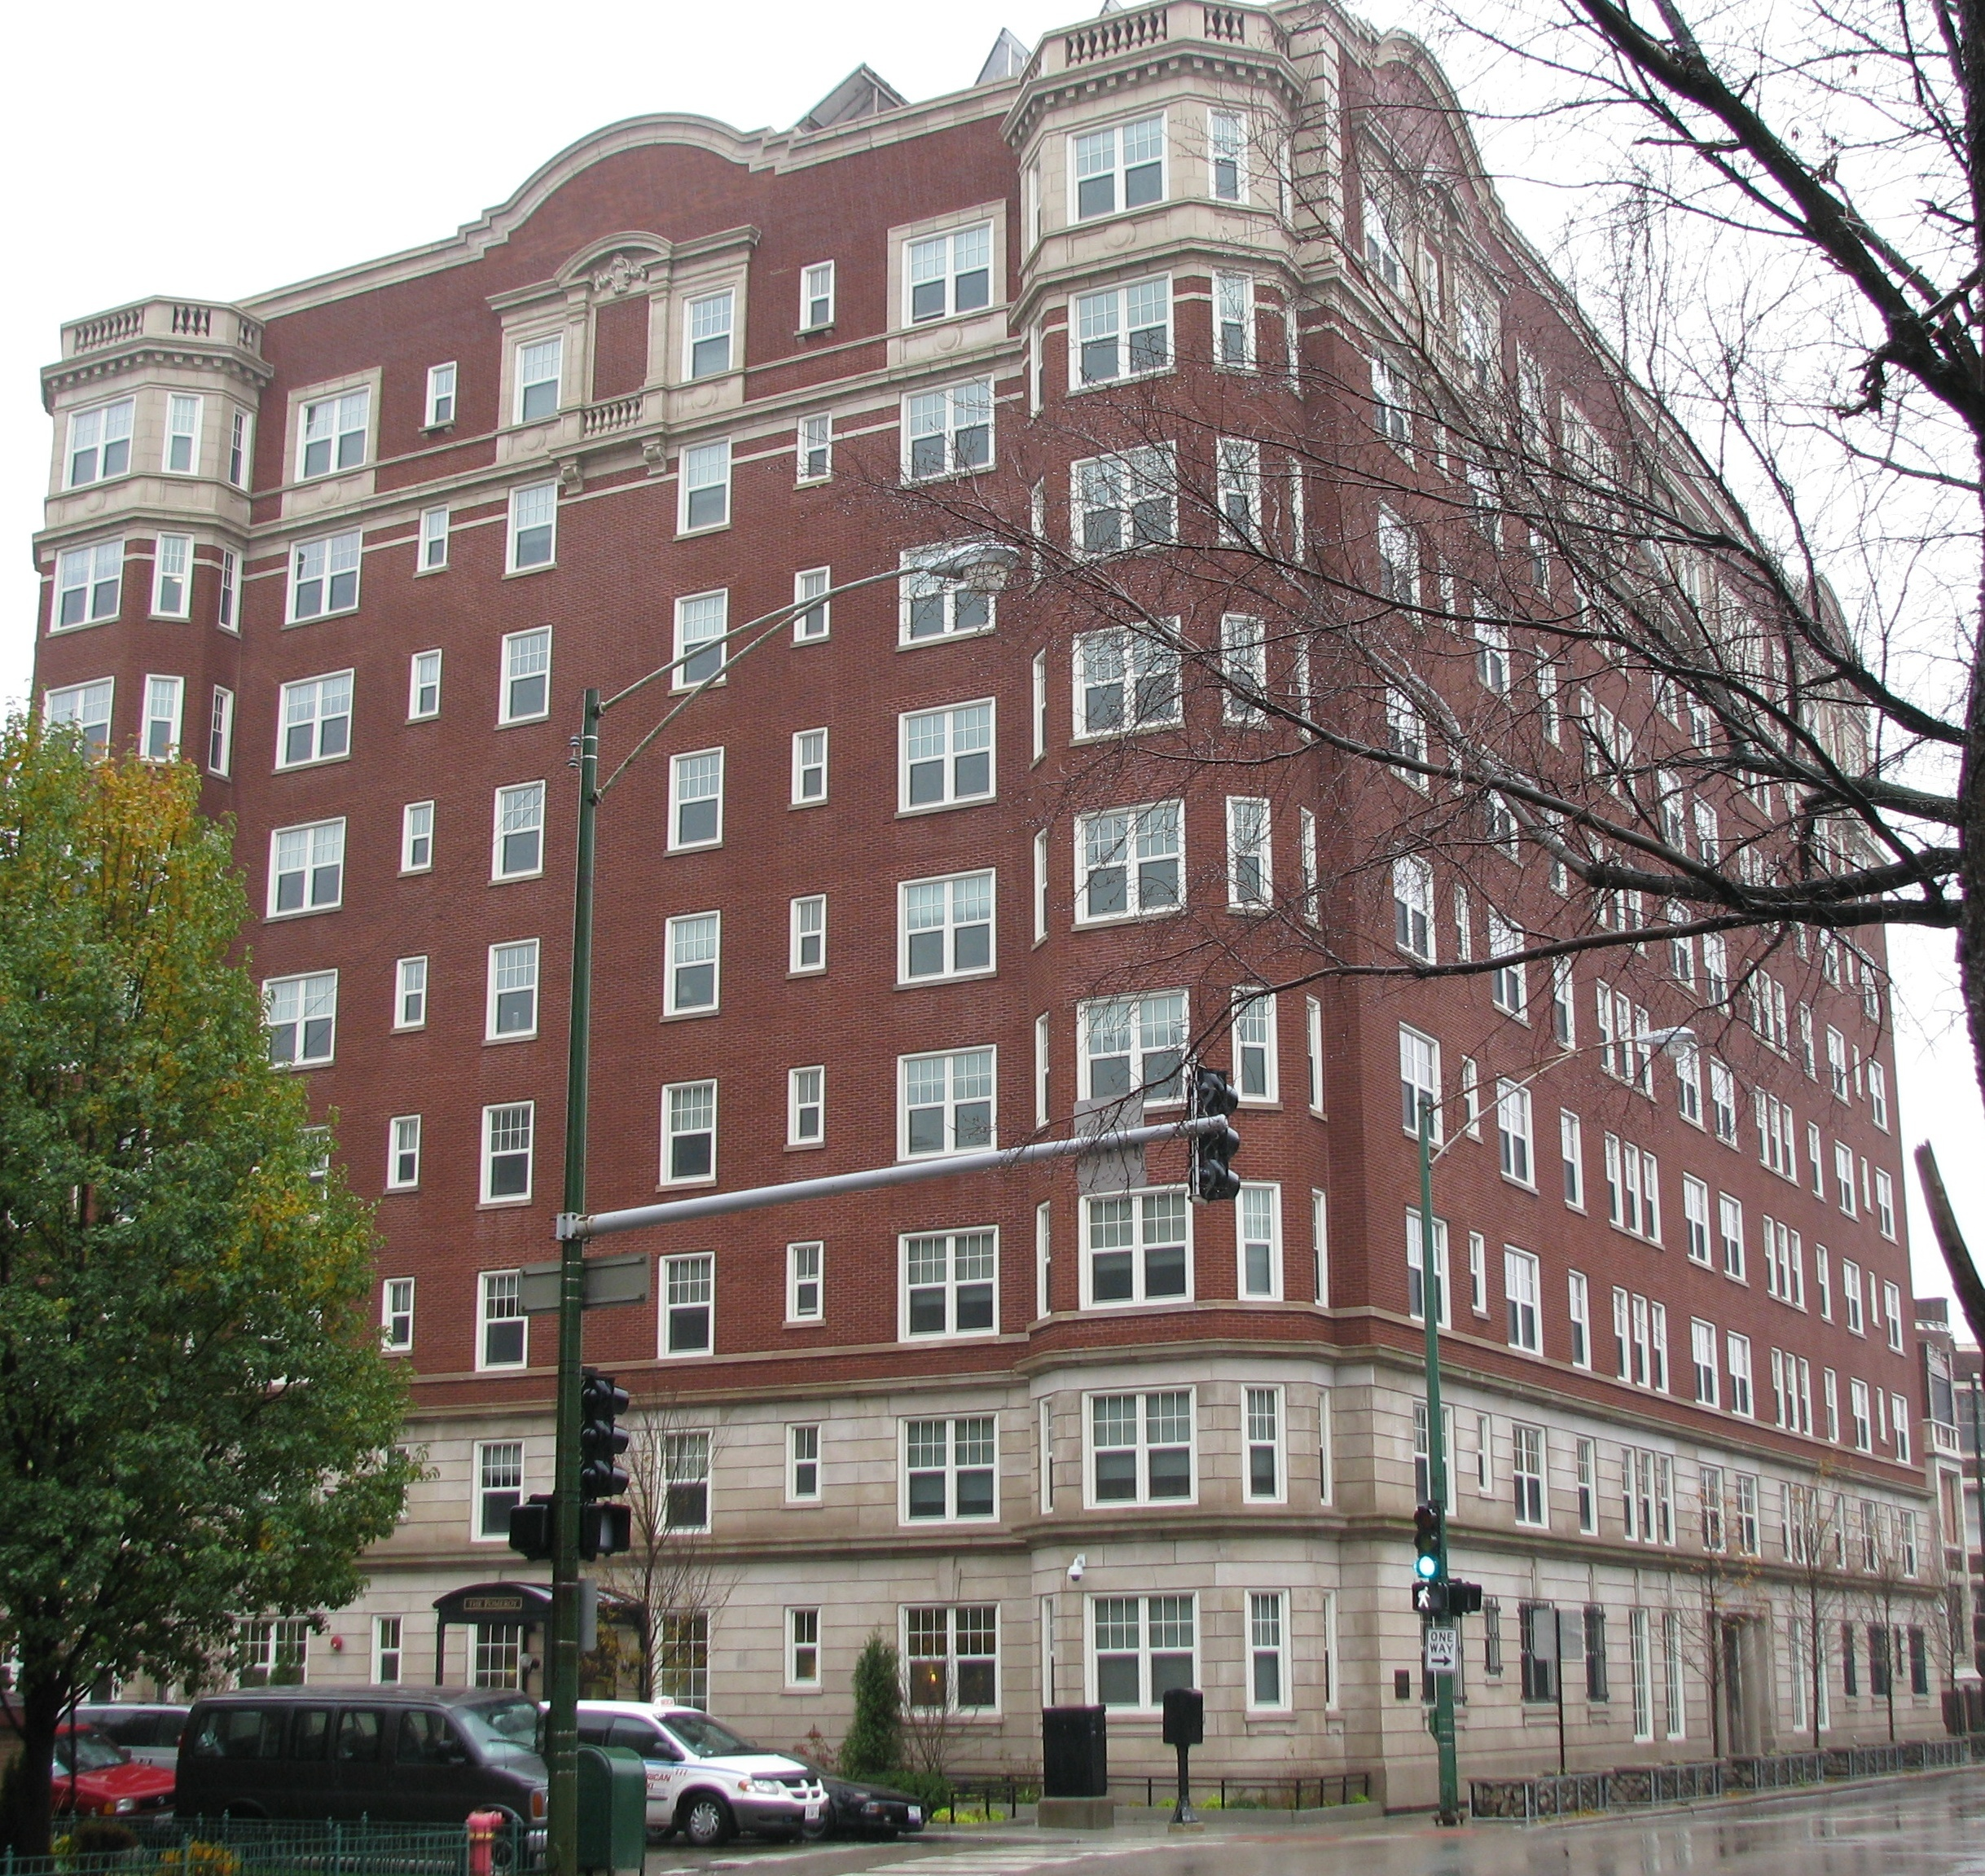 The Pomeroy Apartments